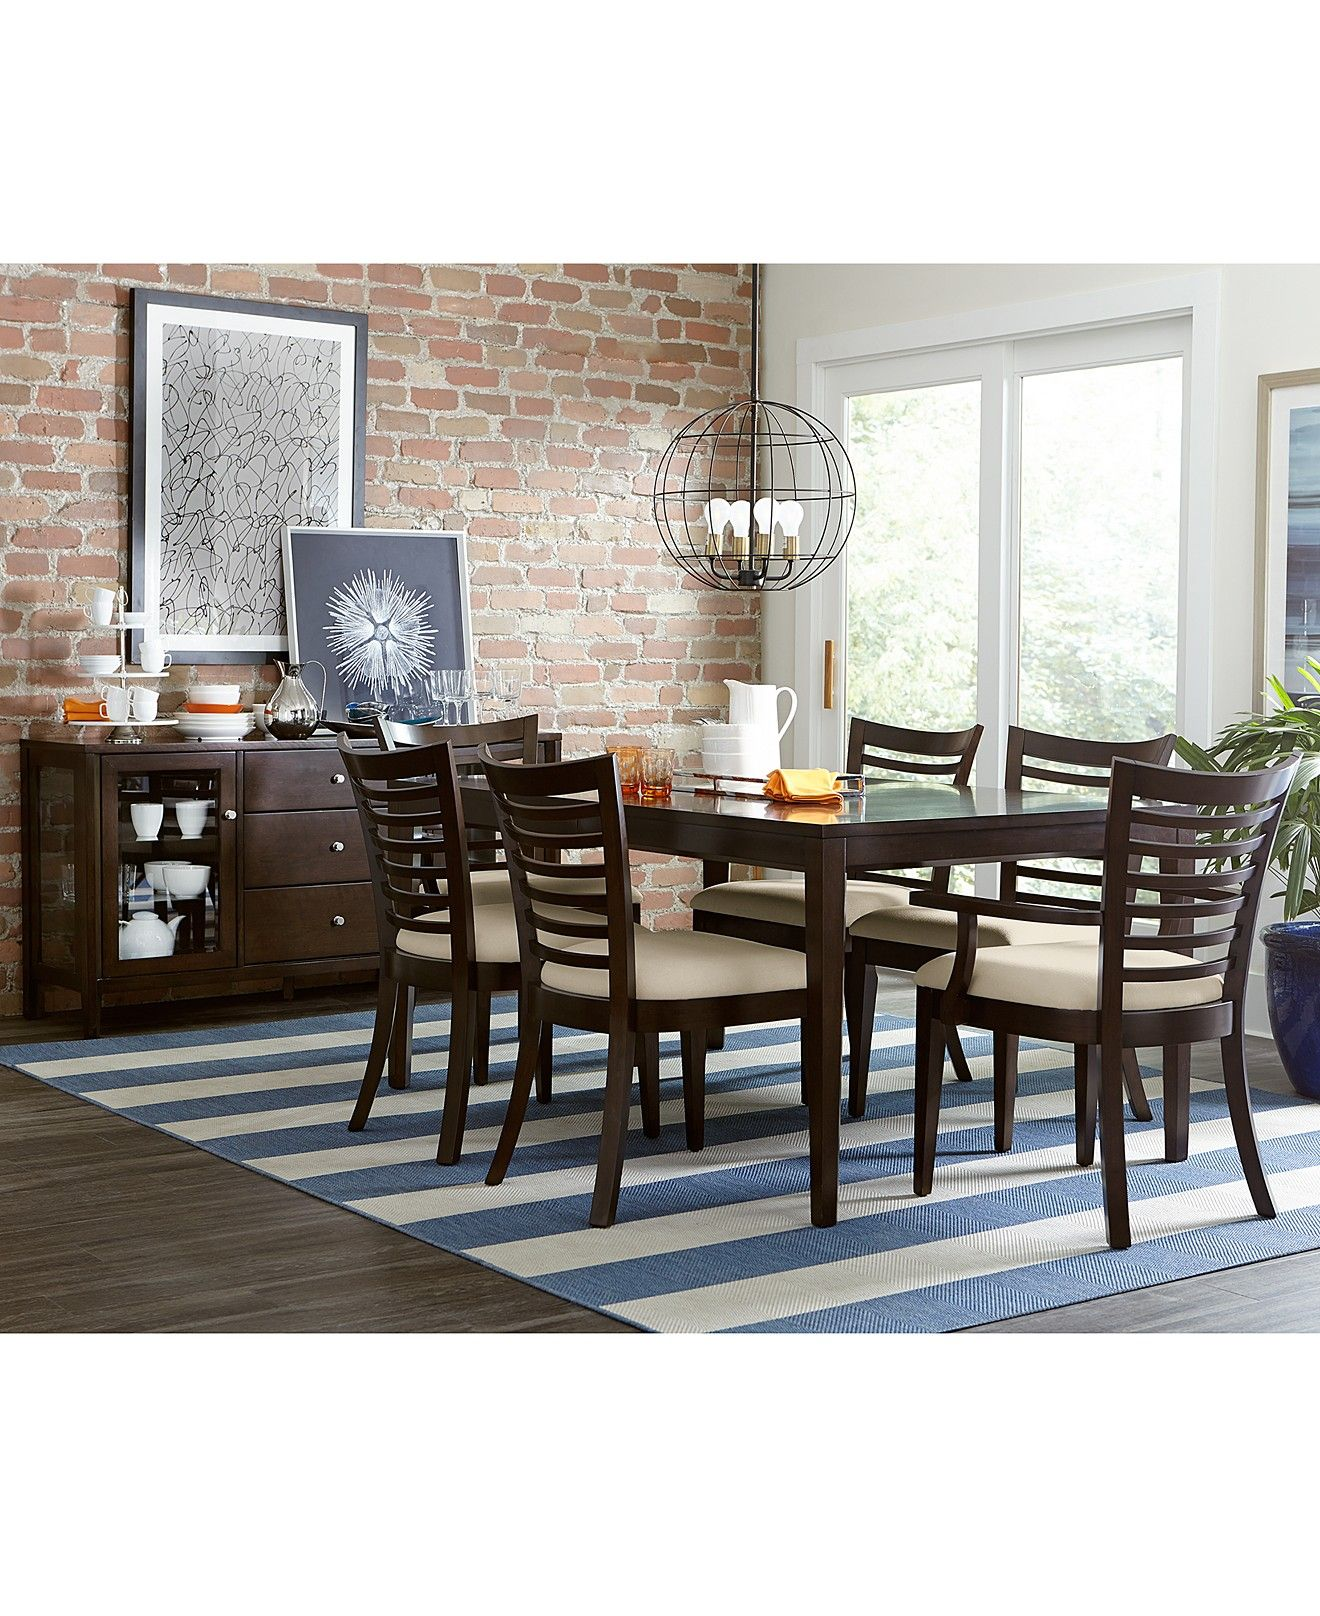 Dining Room Chairs Brisbane Brisbane Dining Furniture Collection Dining Room Collections